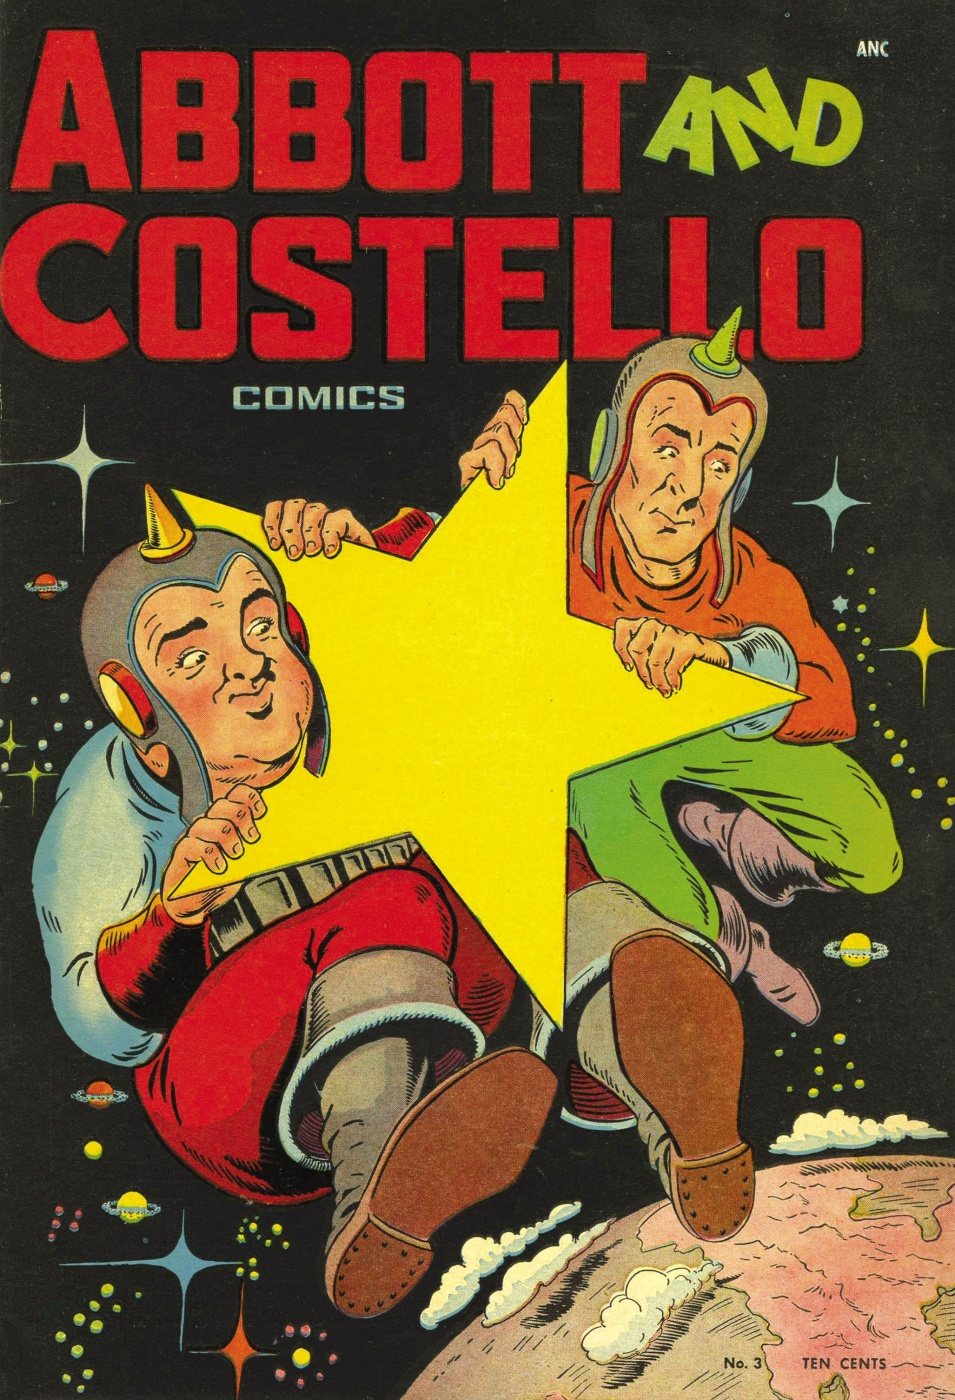 Funny Comics: Abbot and Costello #3